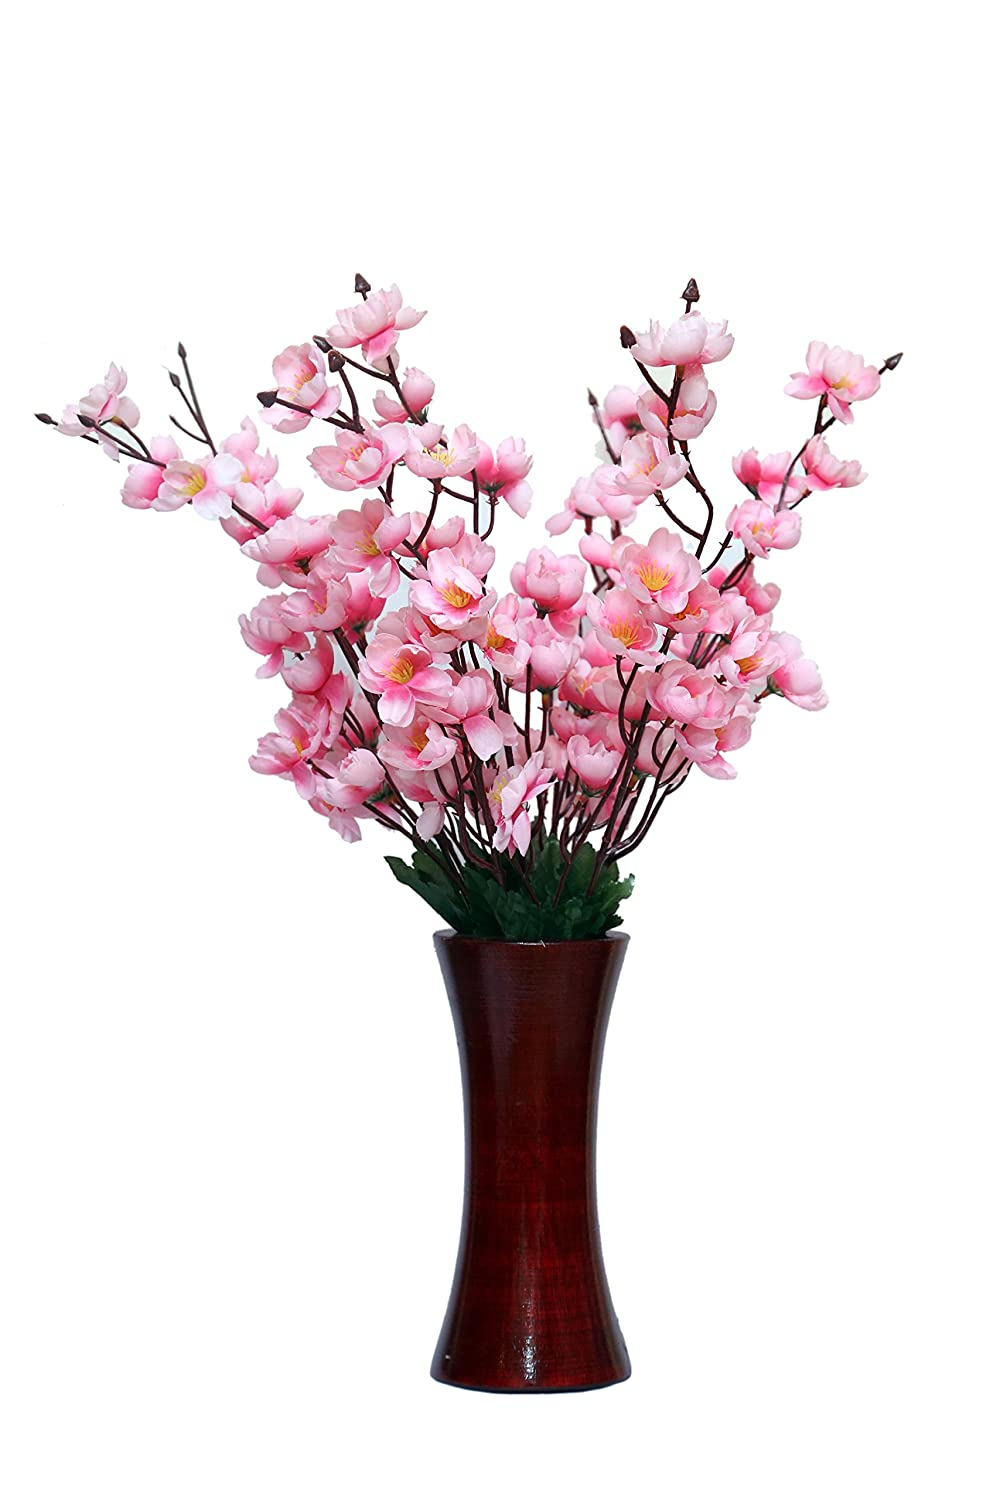 Artificial roses in glass vase free download 6 in h for Artificial flowers for home decoration india